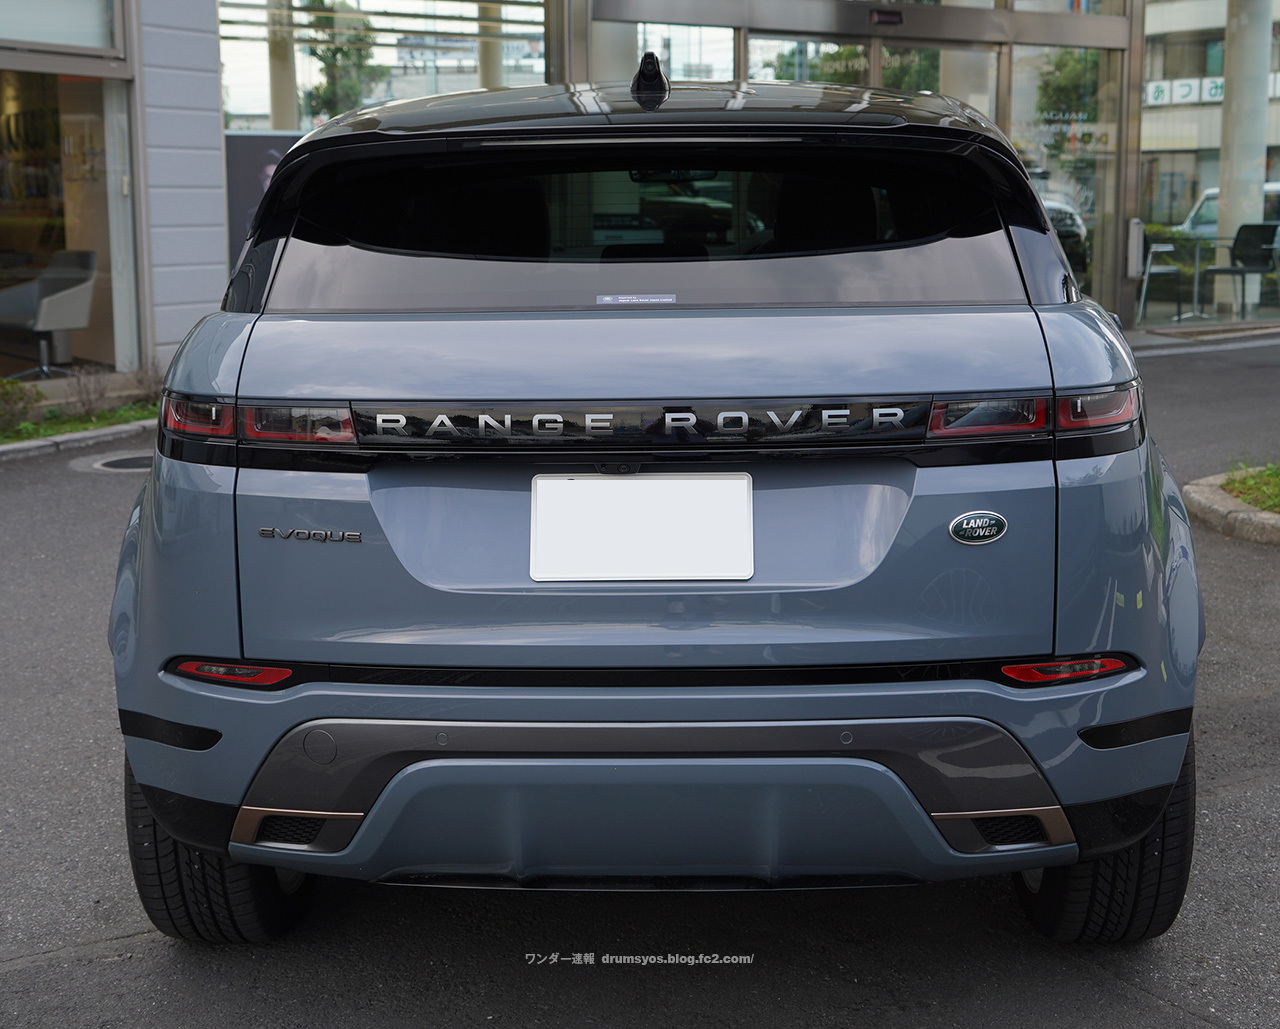 RANGELOVEREVOQUE06.jpg